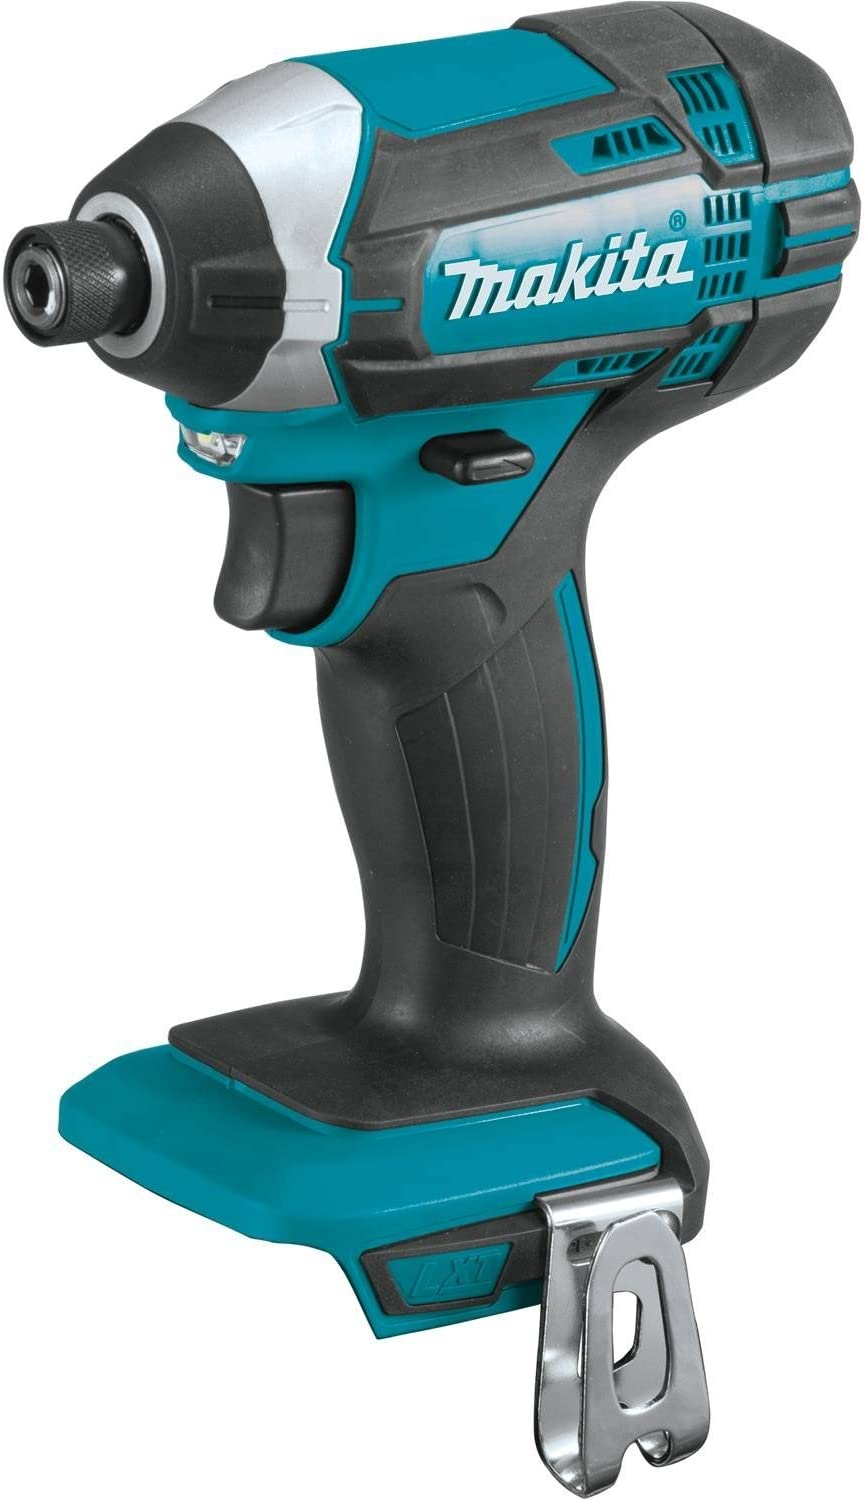 Makita XT706 Cordless Combo Kit Review 3